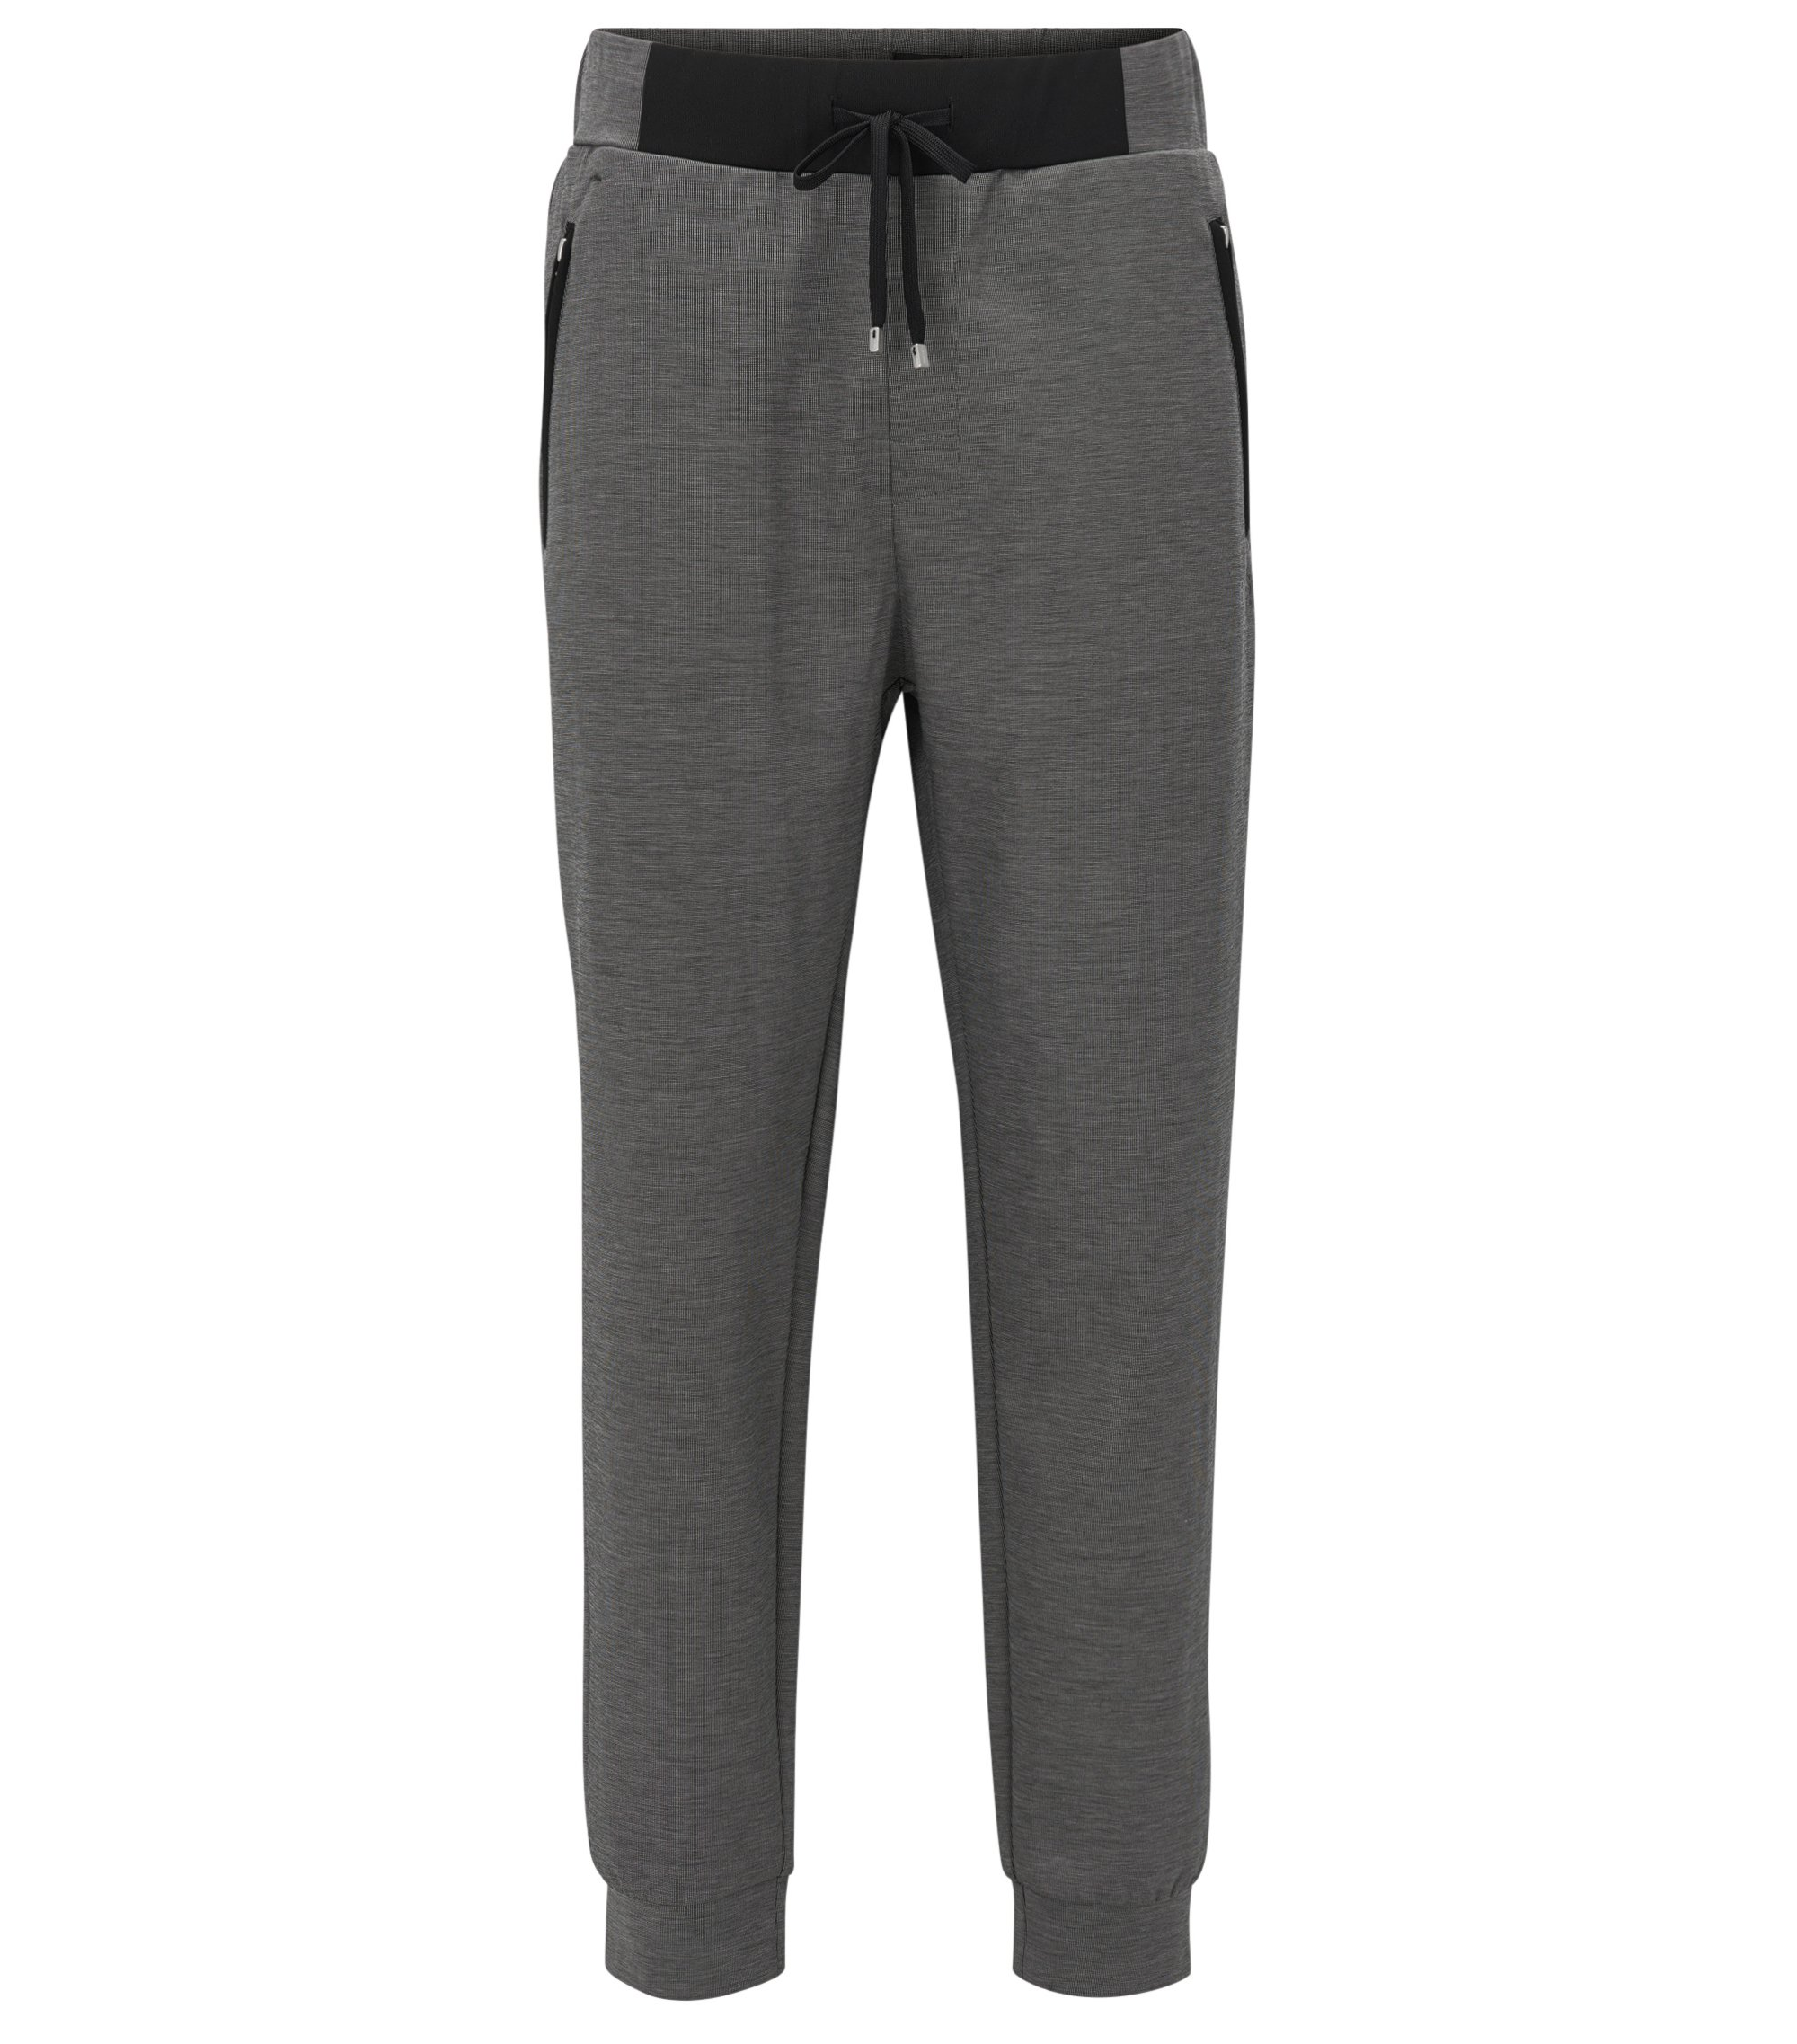 Jersey Lounge Pants | Long Pant Cuffs, Black